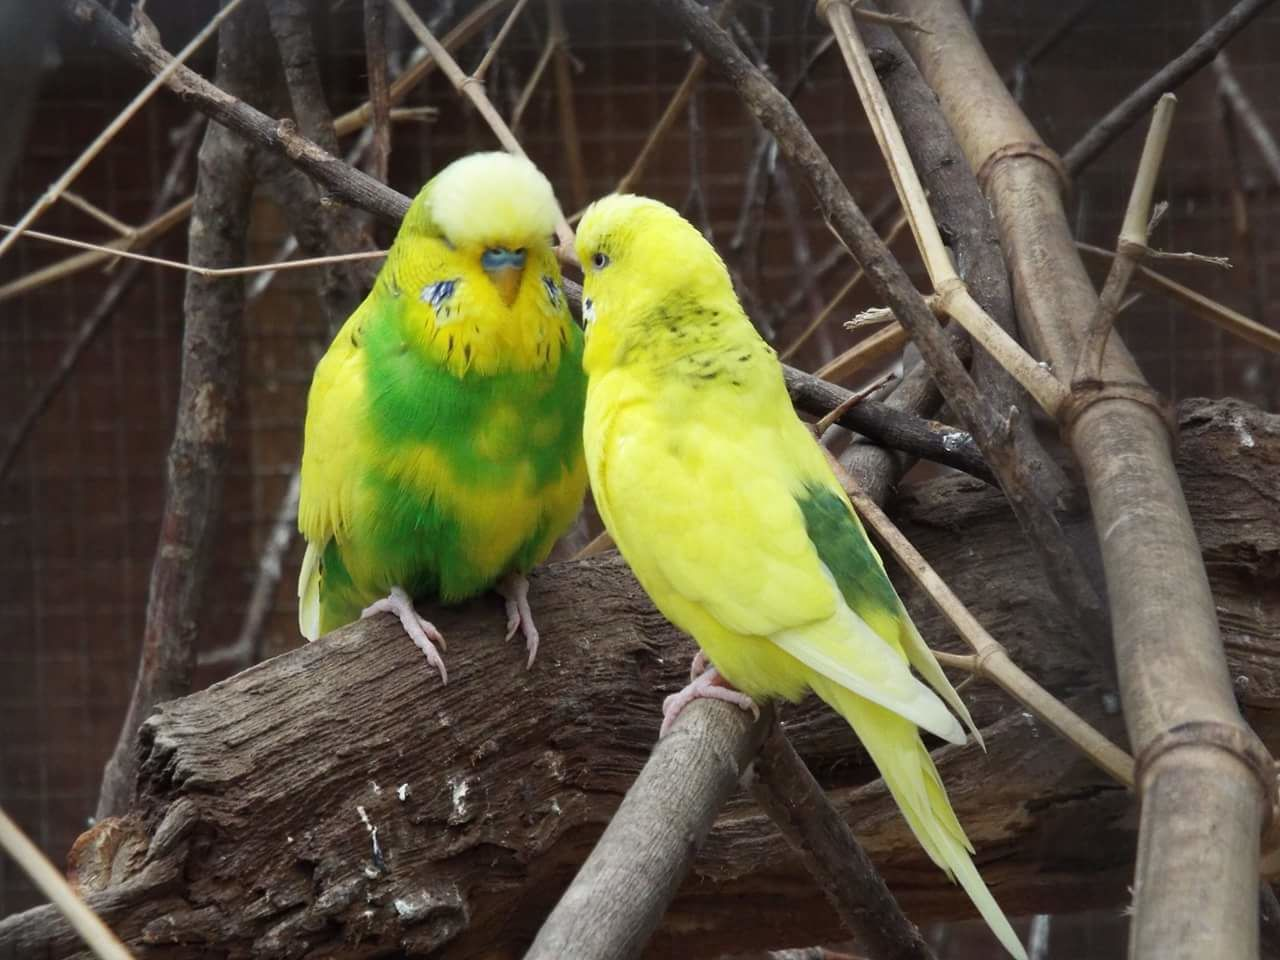 bird, animal themes, perching, parrot, animals in the wild, animal wildlife, branch, yellow, no people, day, nature, outdoors, close-up